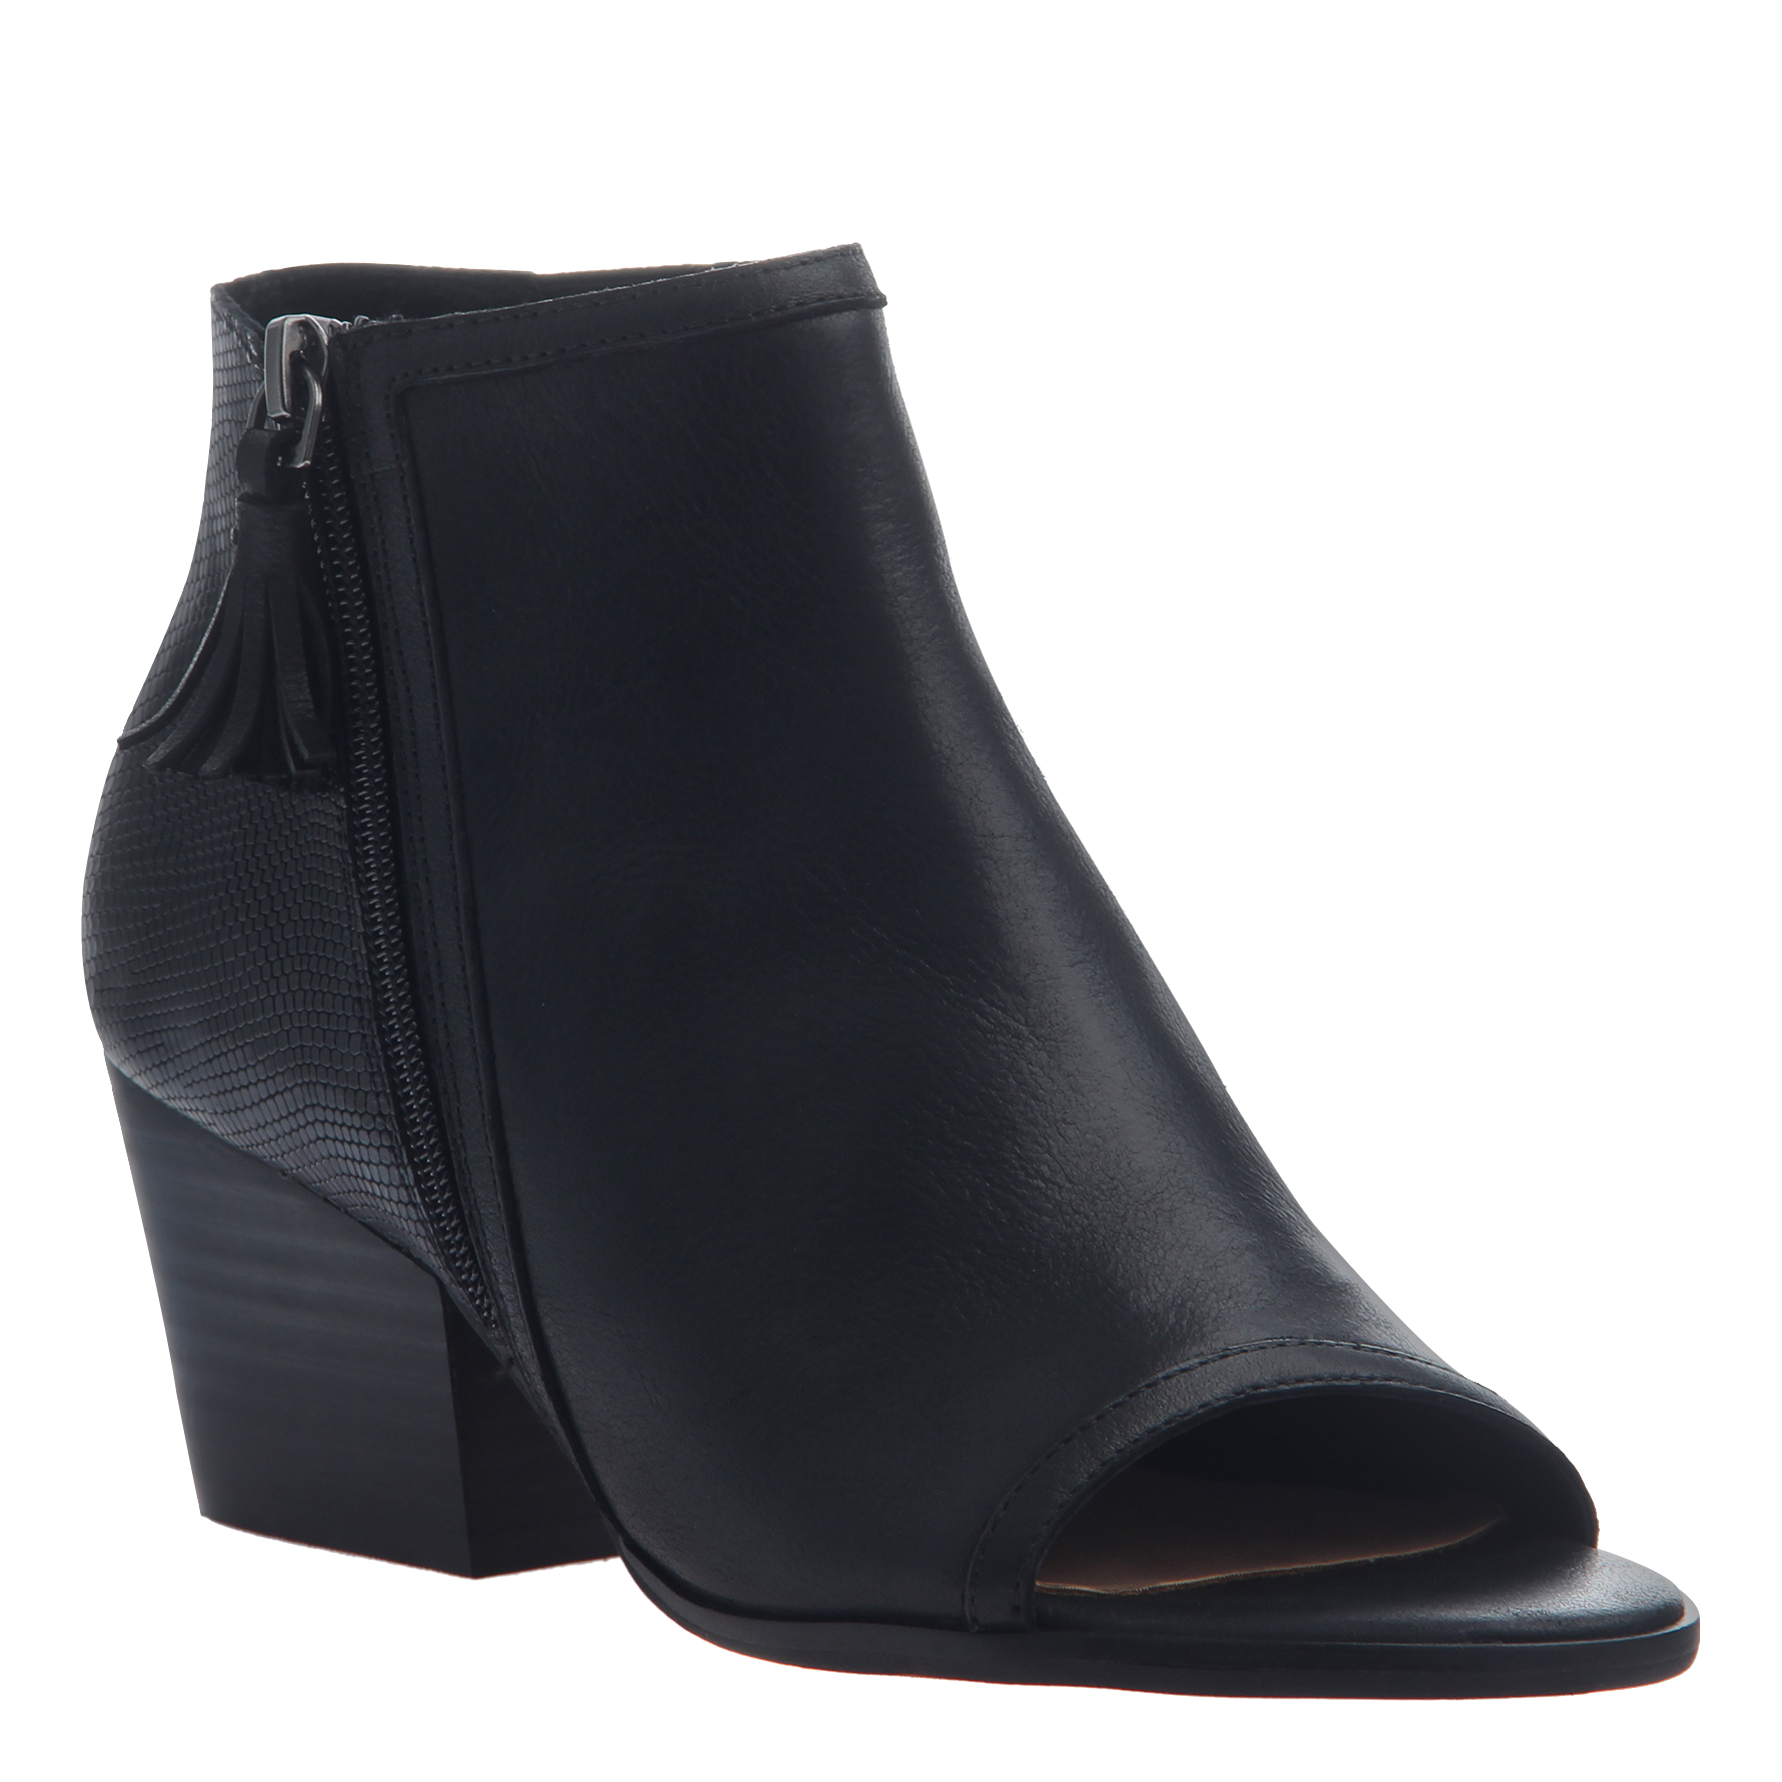 Transparent boot open toe. Ania in black booties